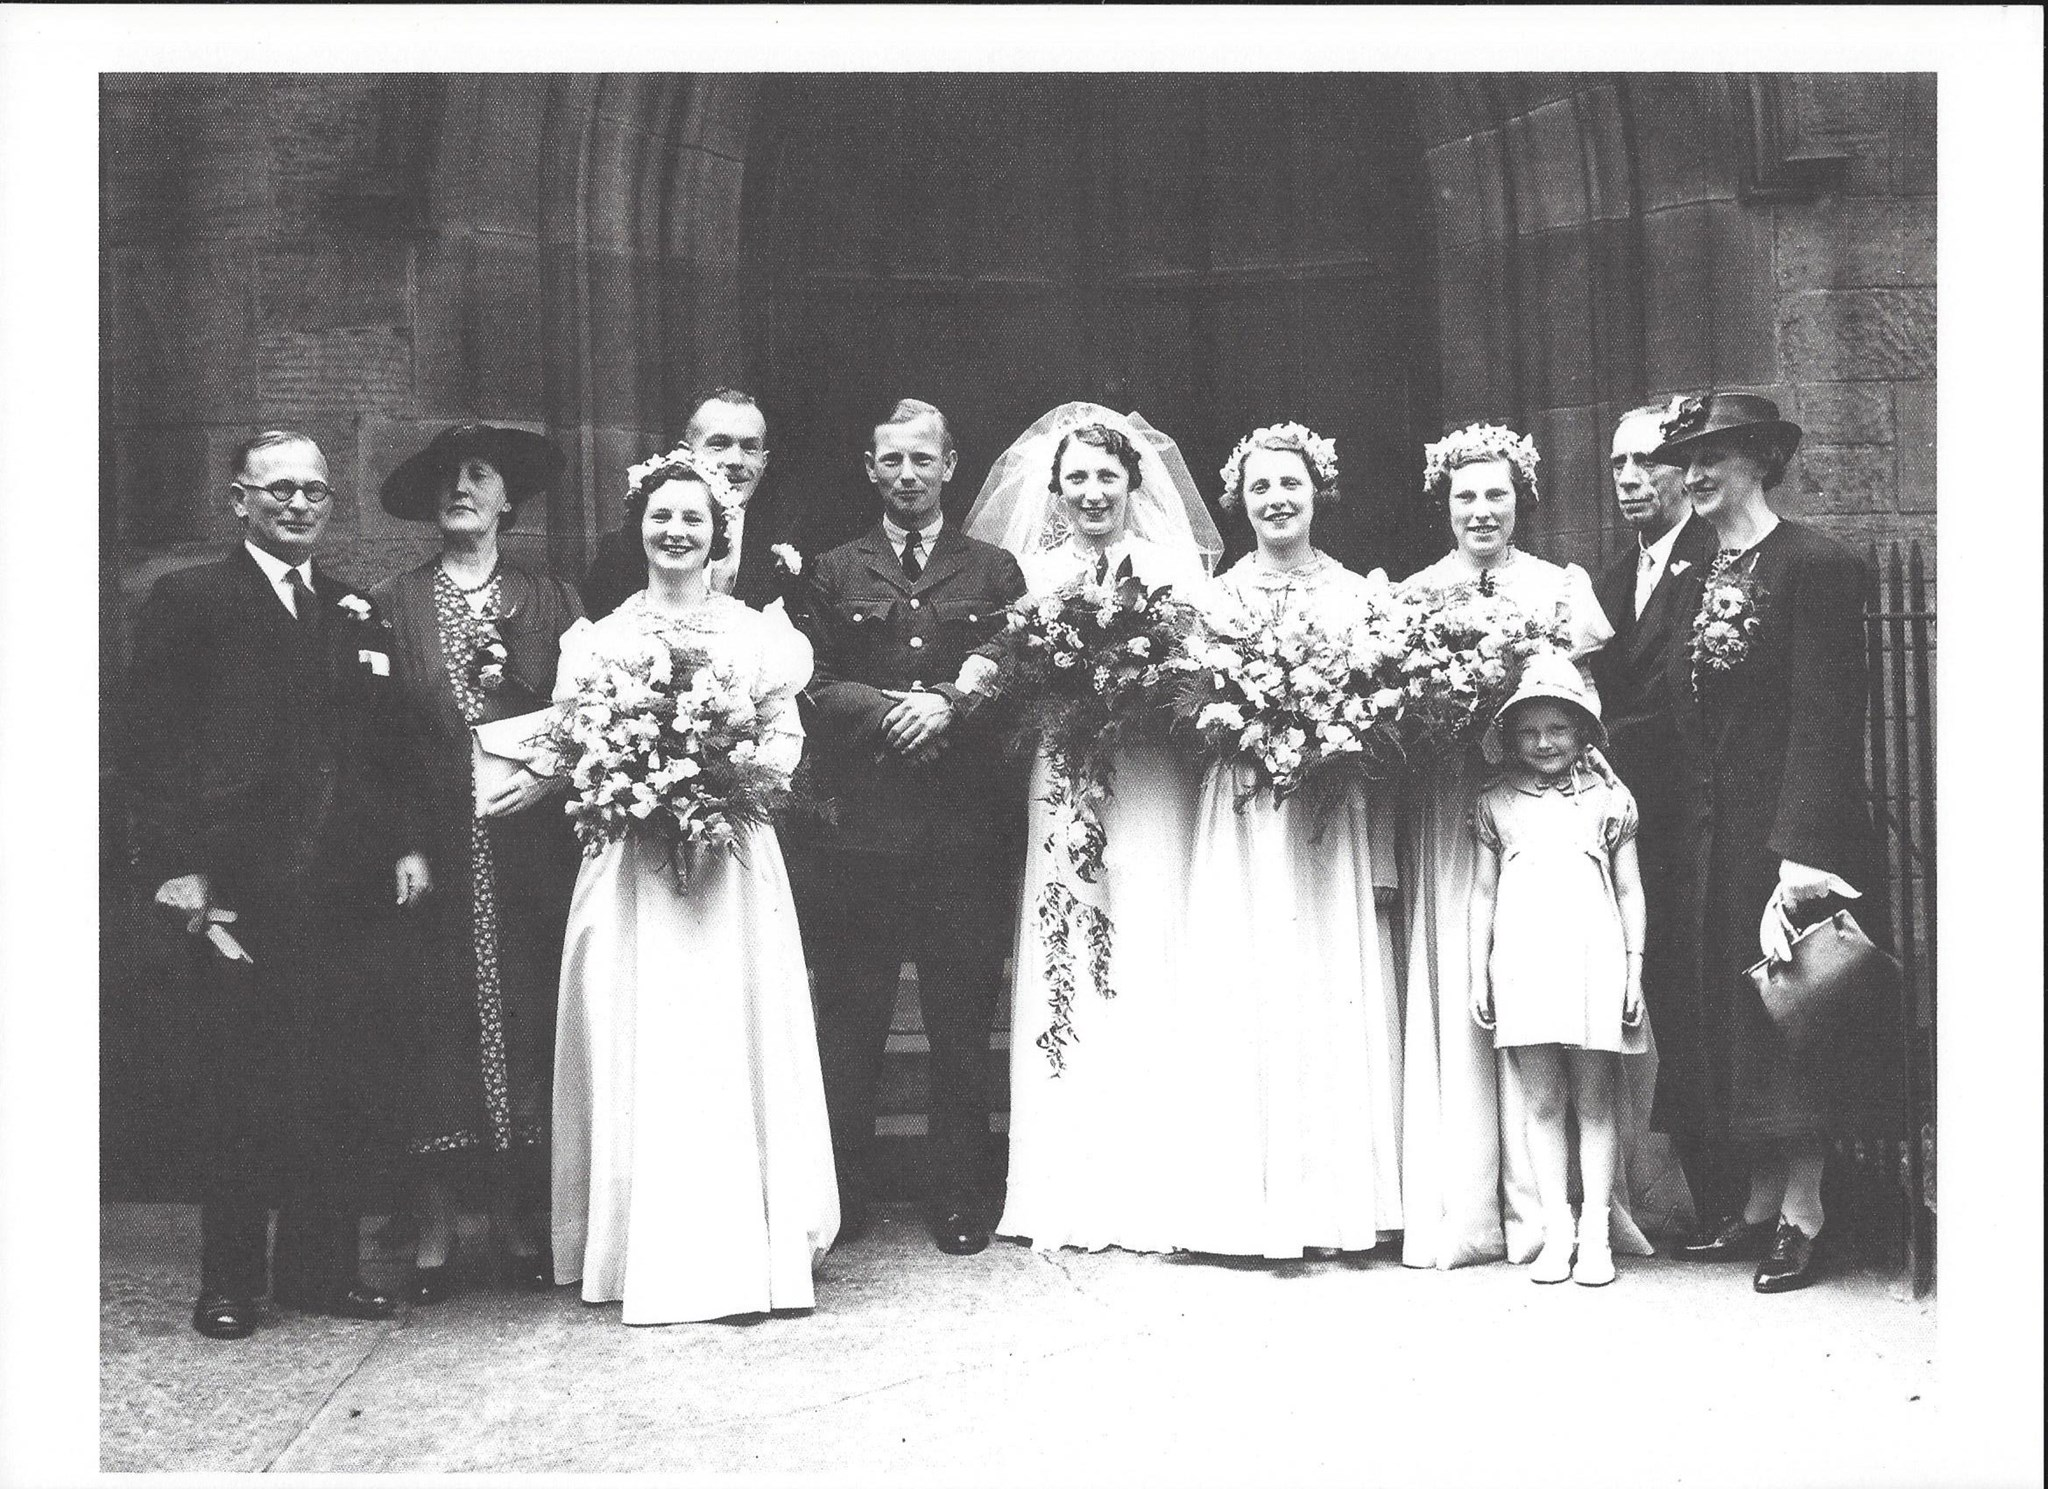 Mum & Dad wedding 1.6.1940 family group